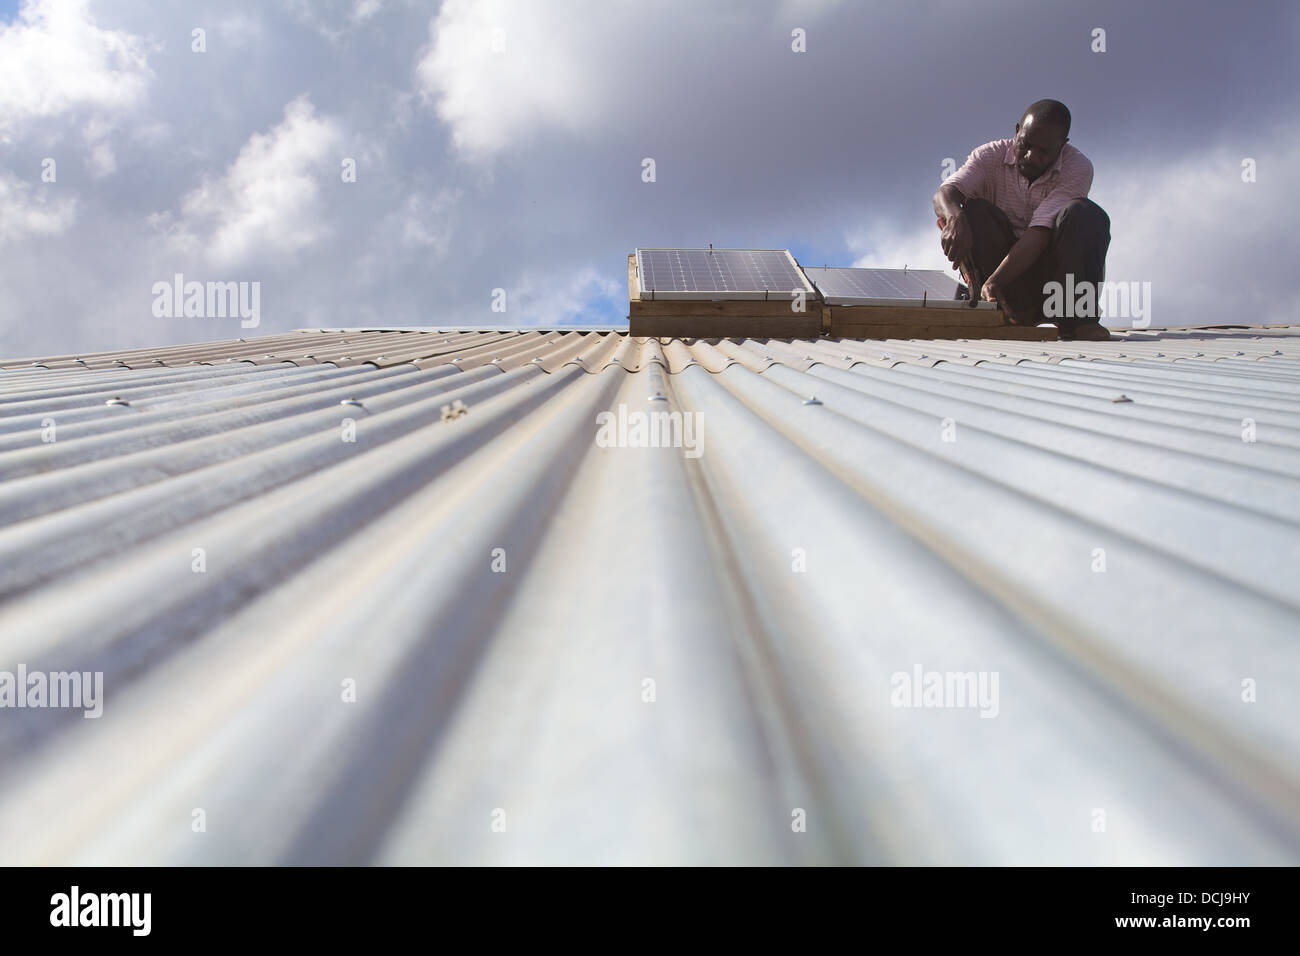 Solar panel technician carrying out maintenance work on a corrugated roof, Miono Region, Tanzania. - Stock Image